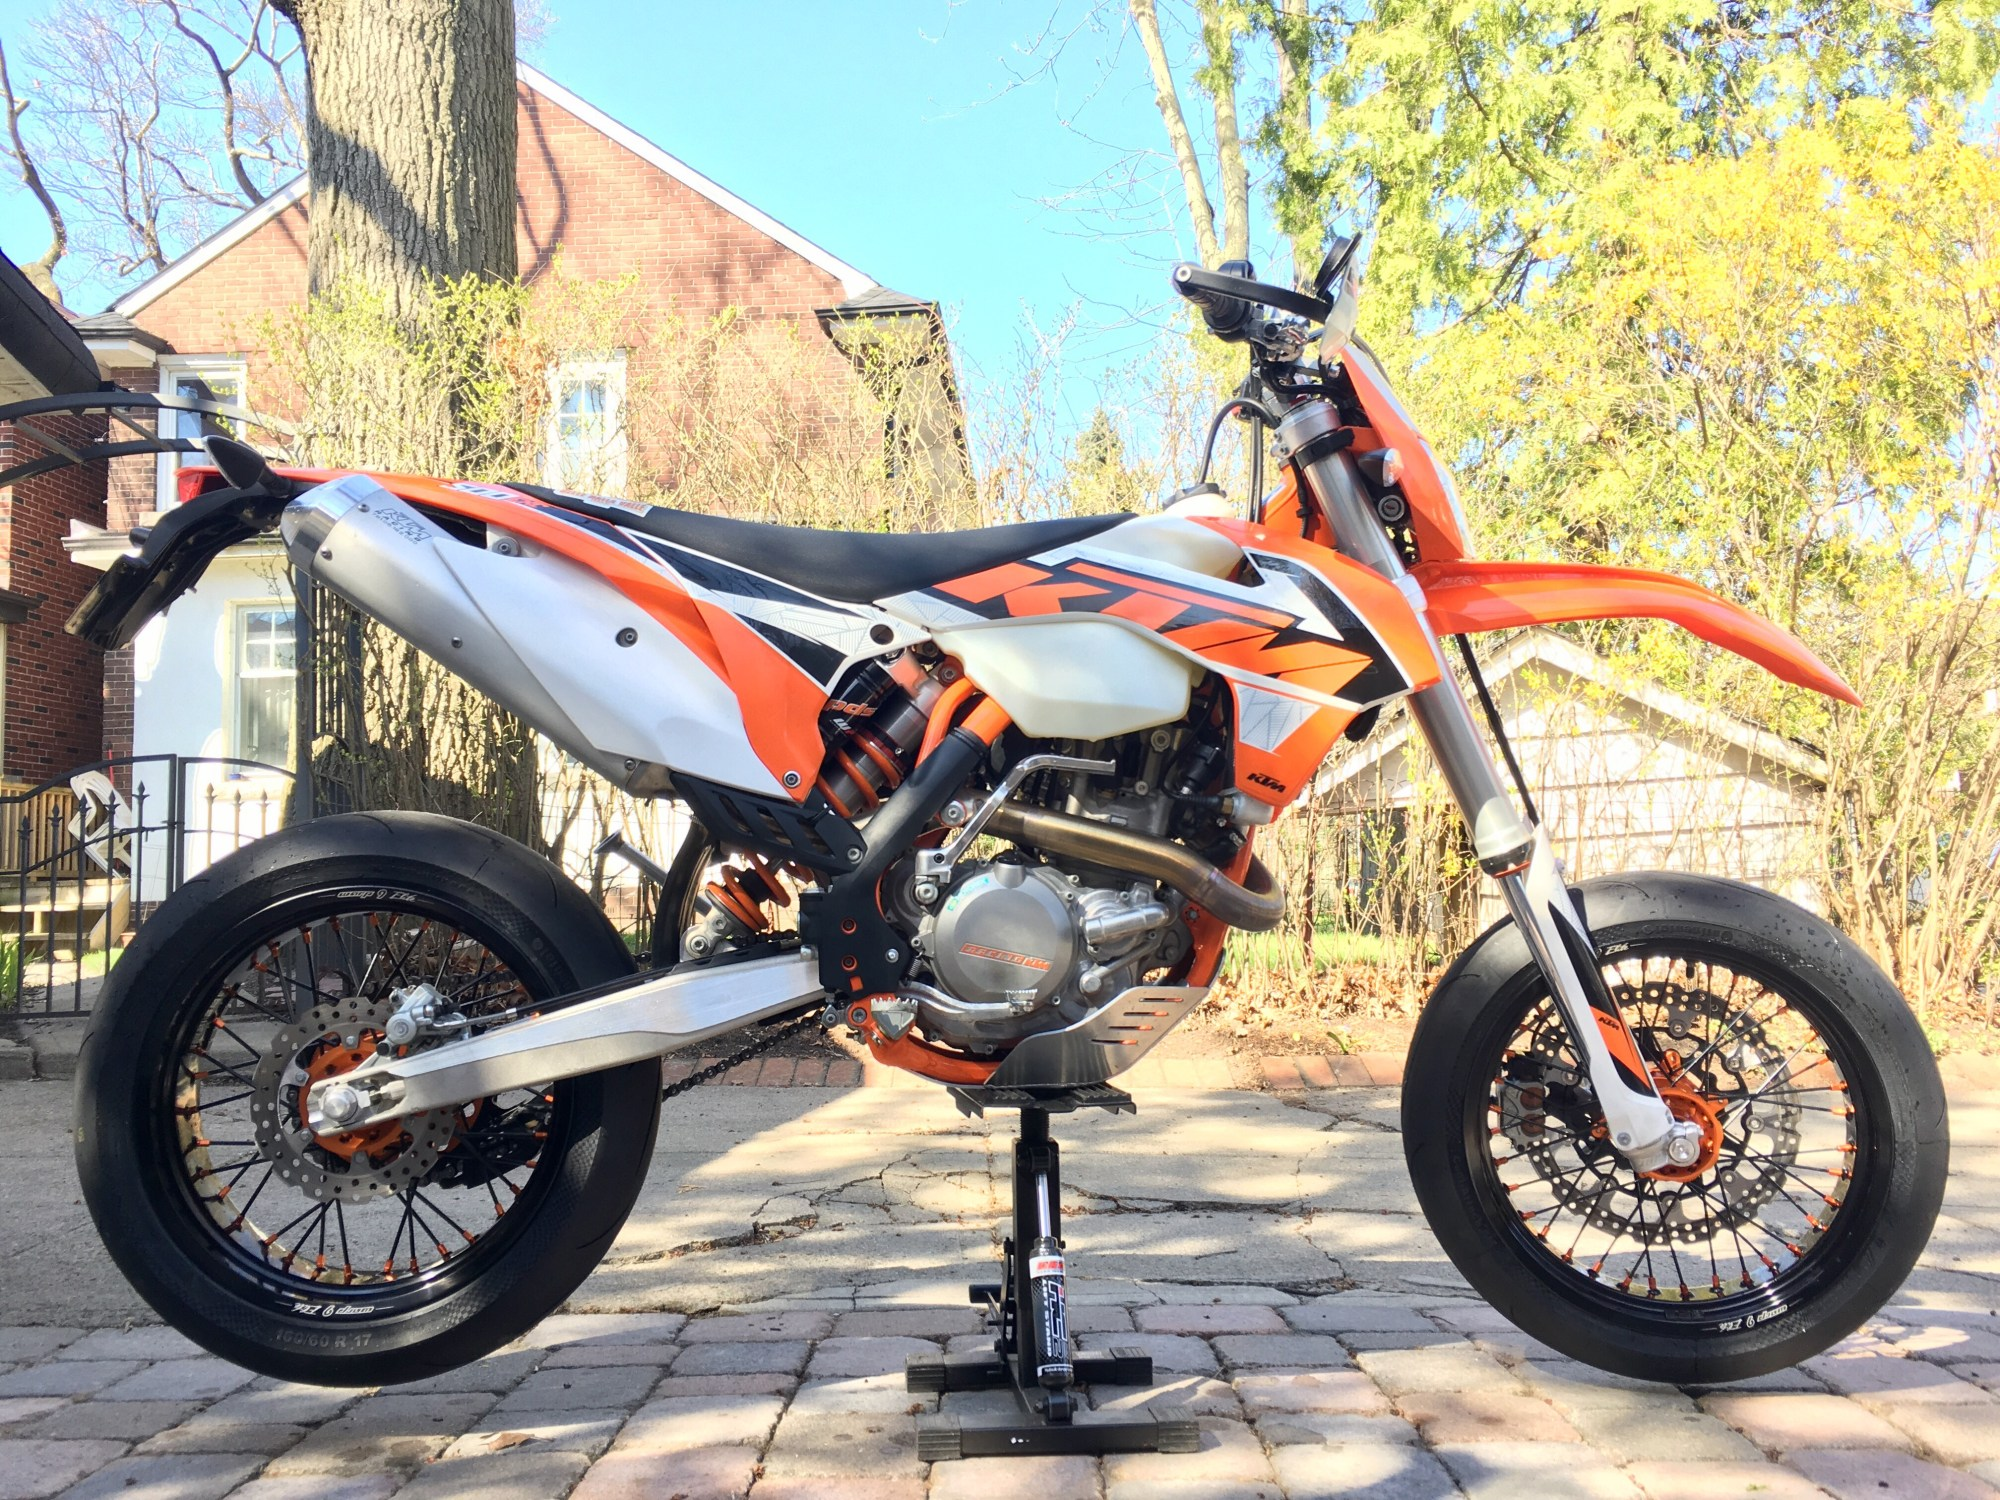 hight resolution of the sweet with the sticky street rubber and the 500 exc s torque and light weight the bike handled like a dream on tight twisty roads